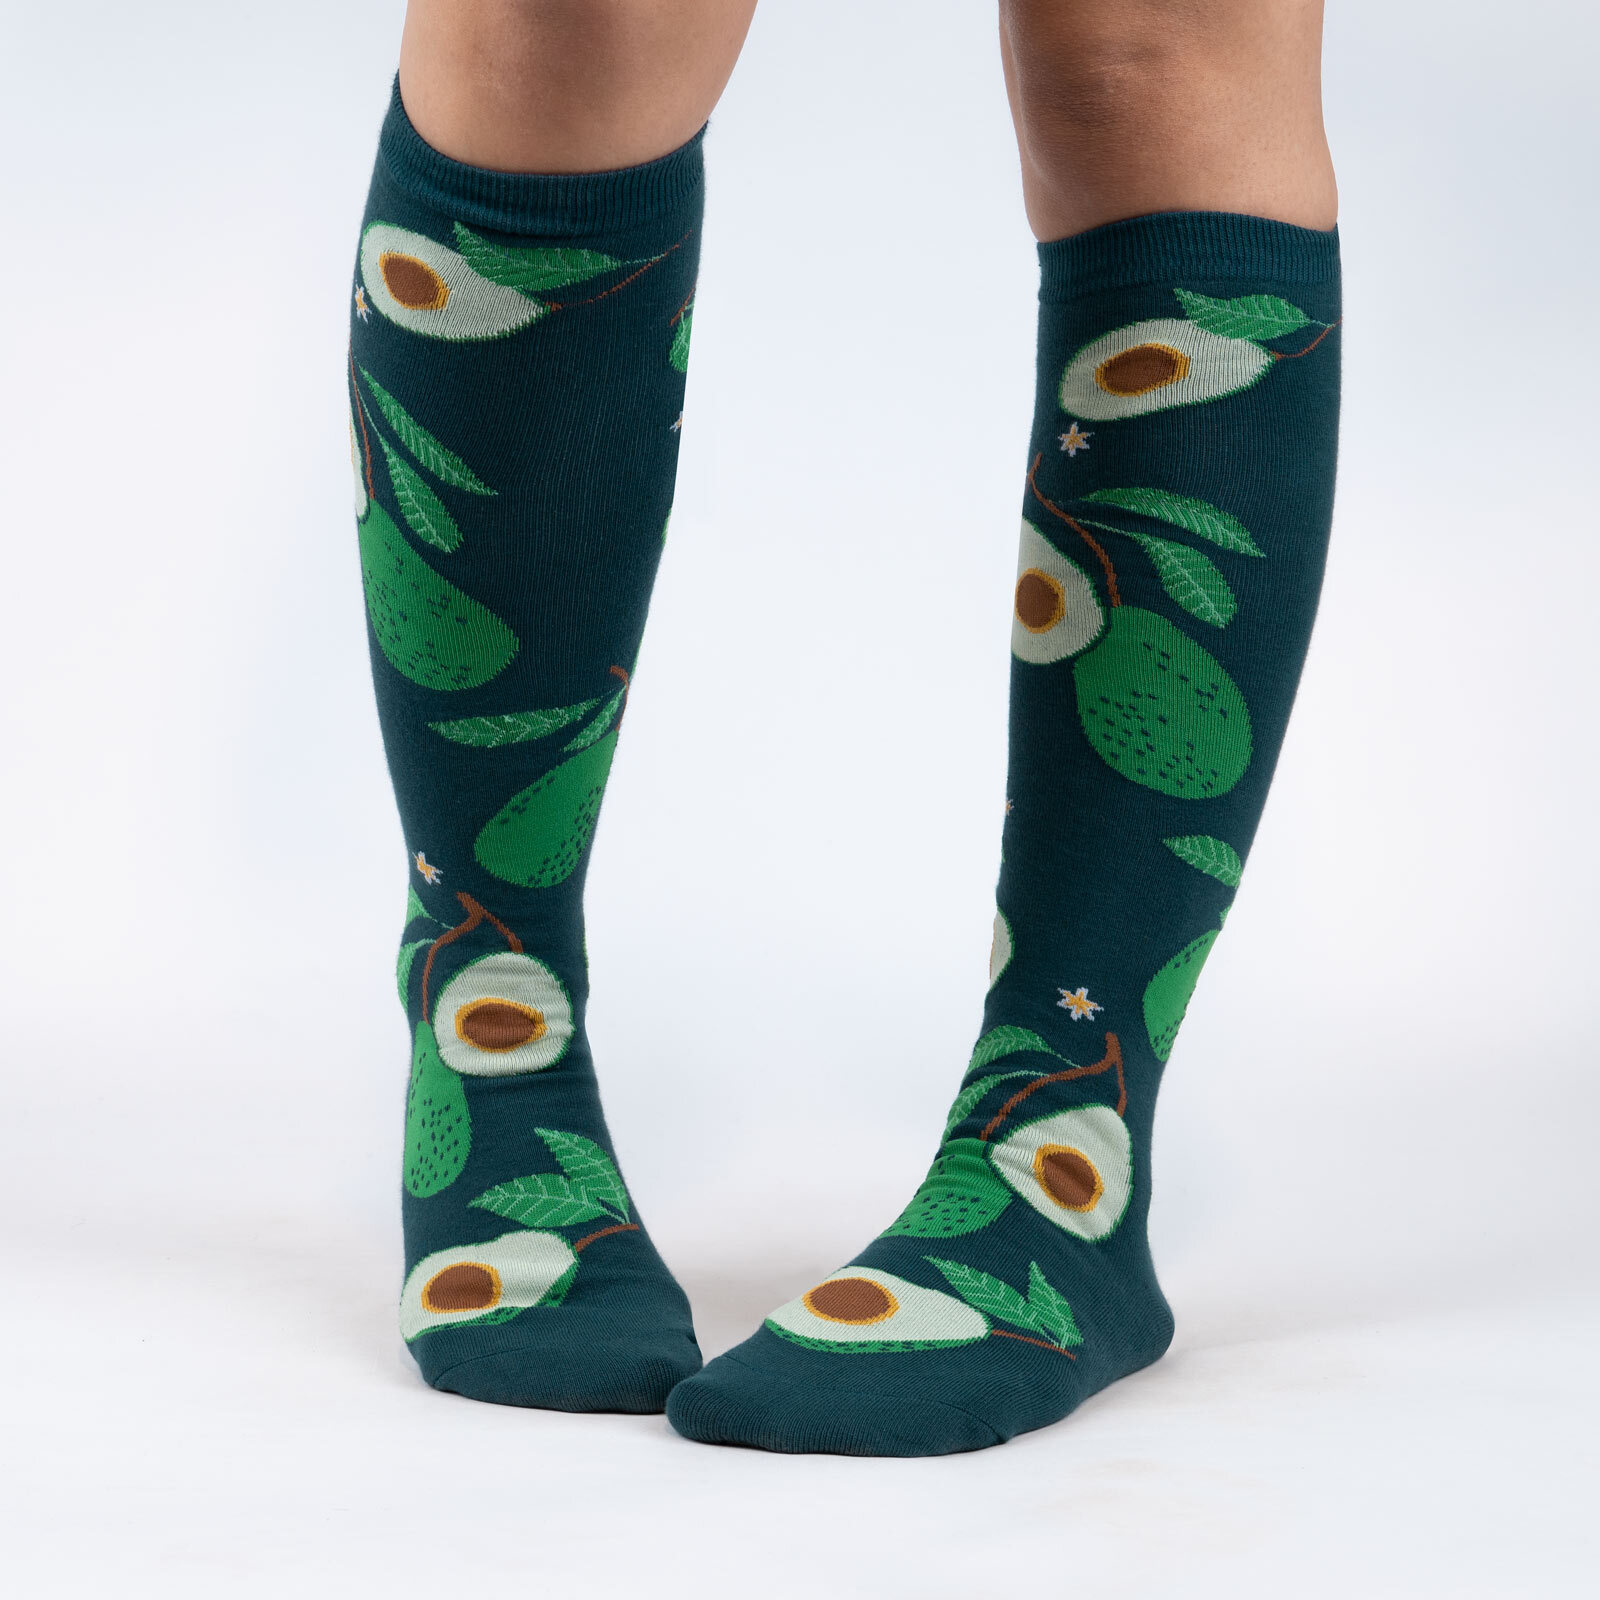 model wearing Avoca-toes - Delicious Avocado Knee High Socks Green - Women's